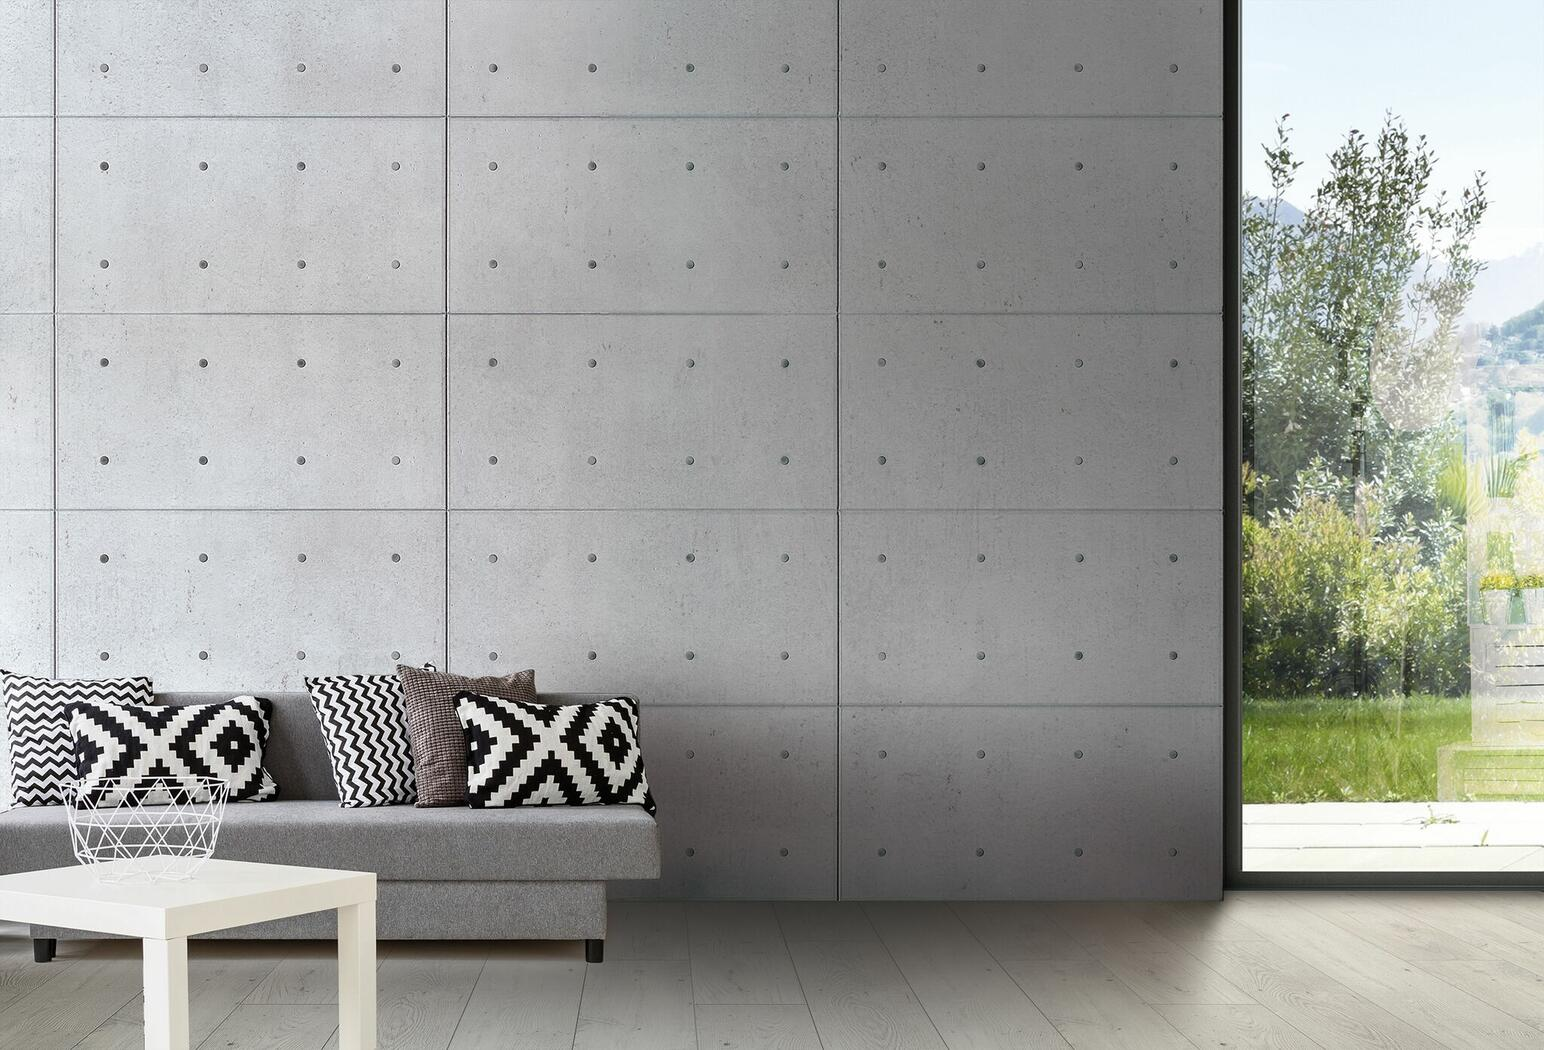 Showroom Beton Cire Paris concreo concrete panels | marius aurenti